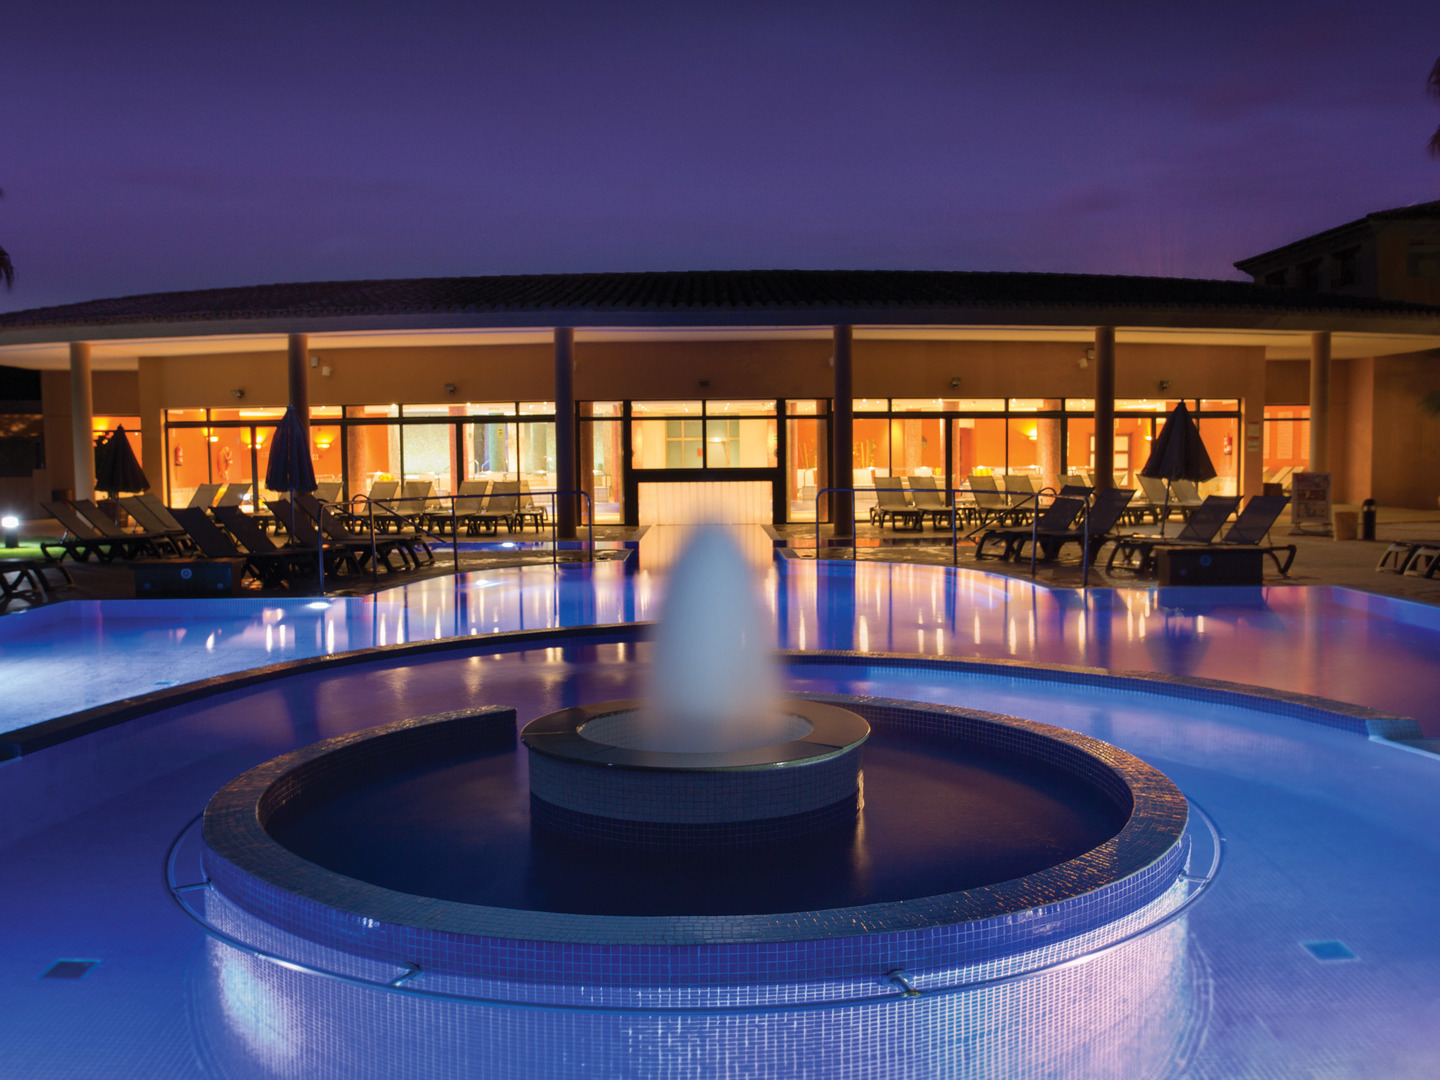 Marriott's Club Son Antem Outdoor Pool and Spa. Marriott's Club Son Antem is located in Mallorca,  Spain.